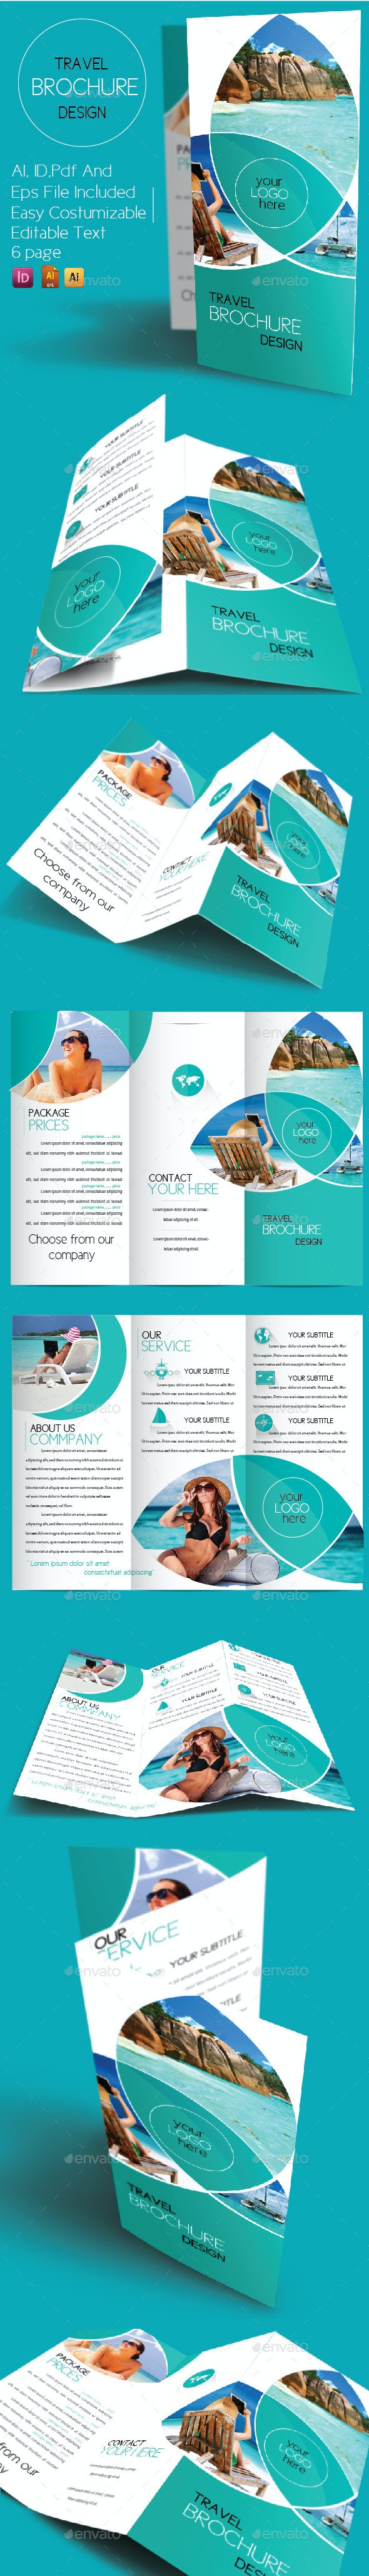 Travel Brcohure Design - Informational Brochures